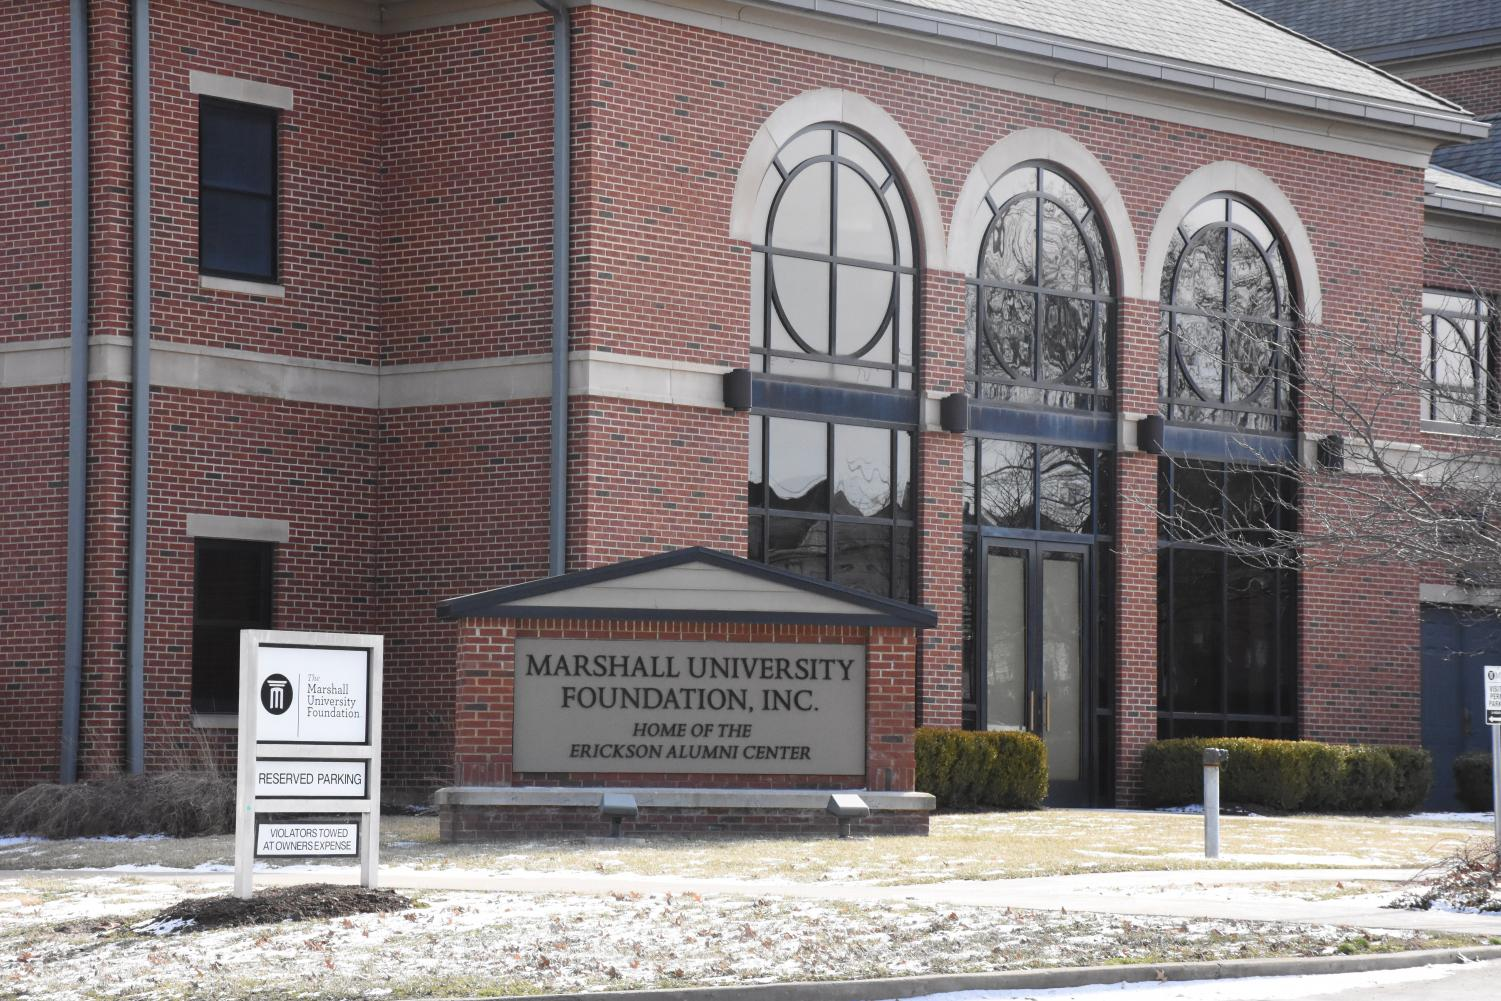 The Brad D. Smith Foundation Hall is located on Marshall's campus and is responsible for reaching out to Marshall University alumni to encourage scholarship donors as well as offer thanks from students to donors. The Foundation Hall can also be rented for special events and meeting spaces.